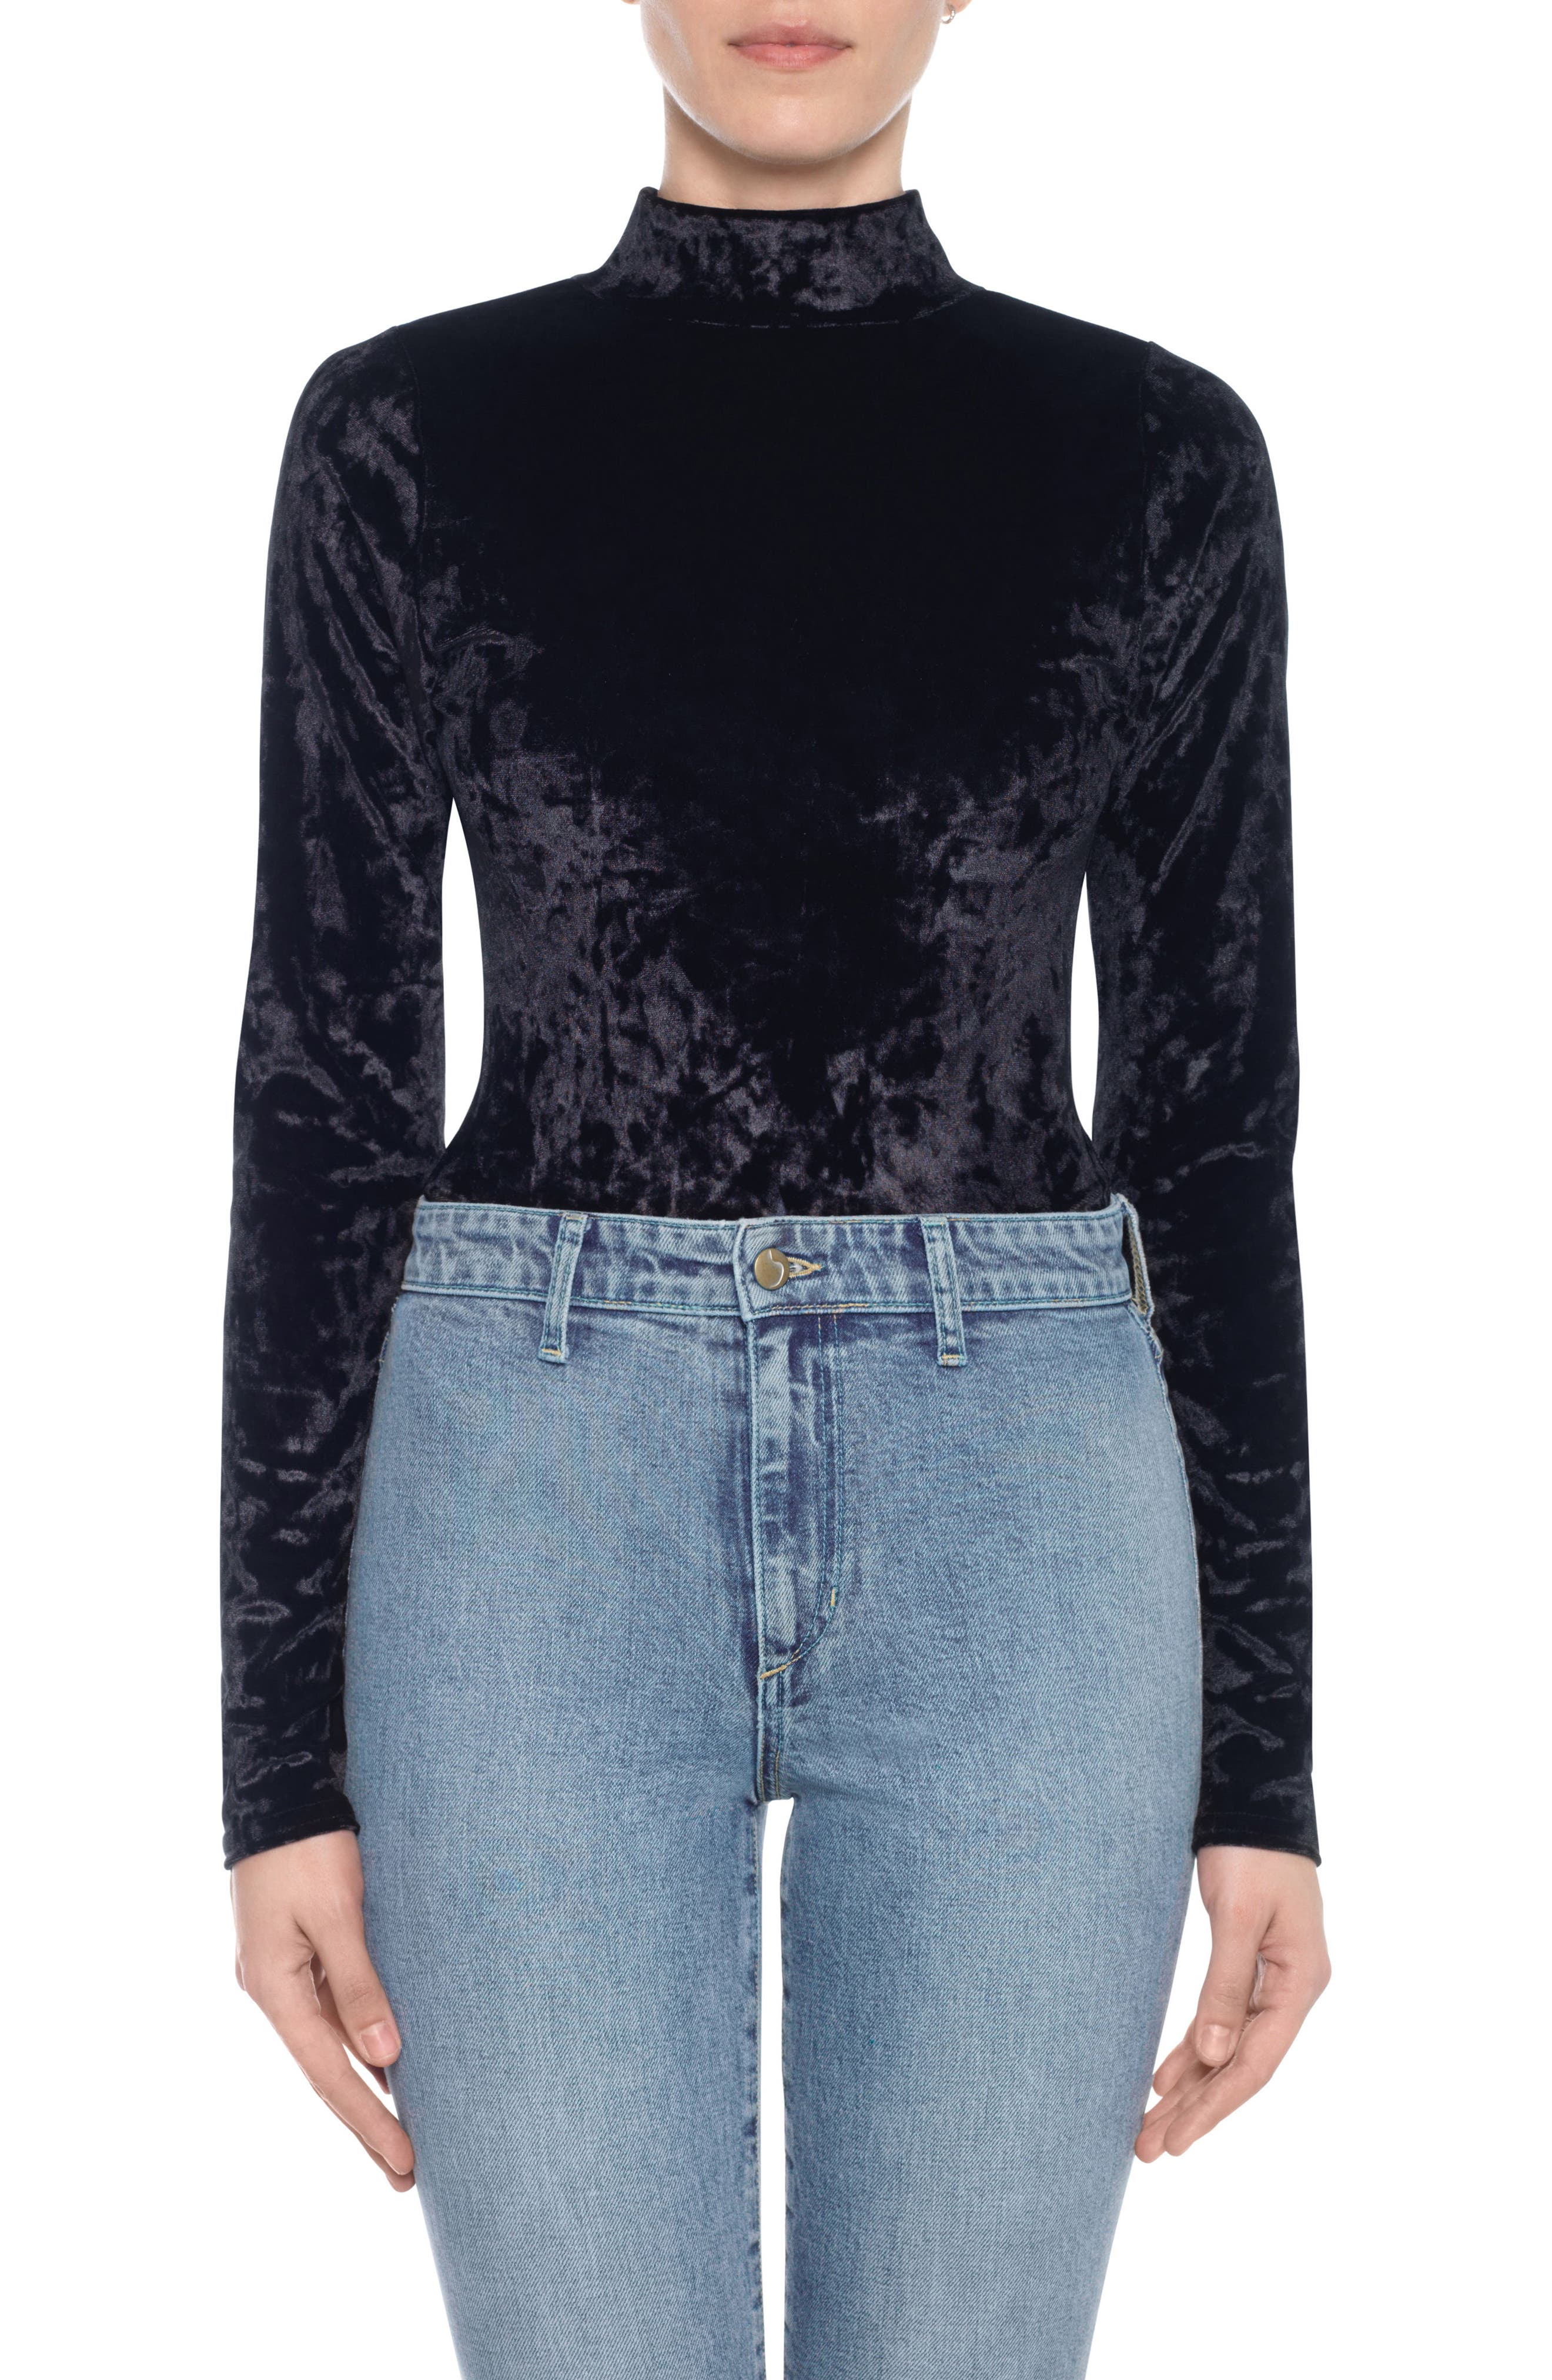 Taylor Hill x Joe's Mock Neck Velvet Bodysuit